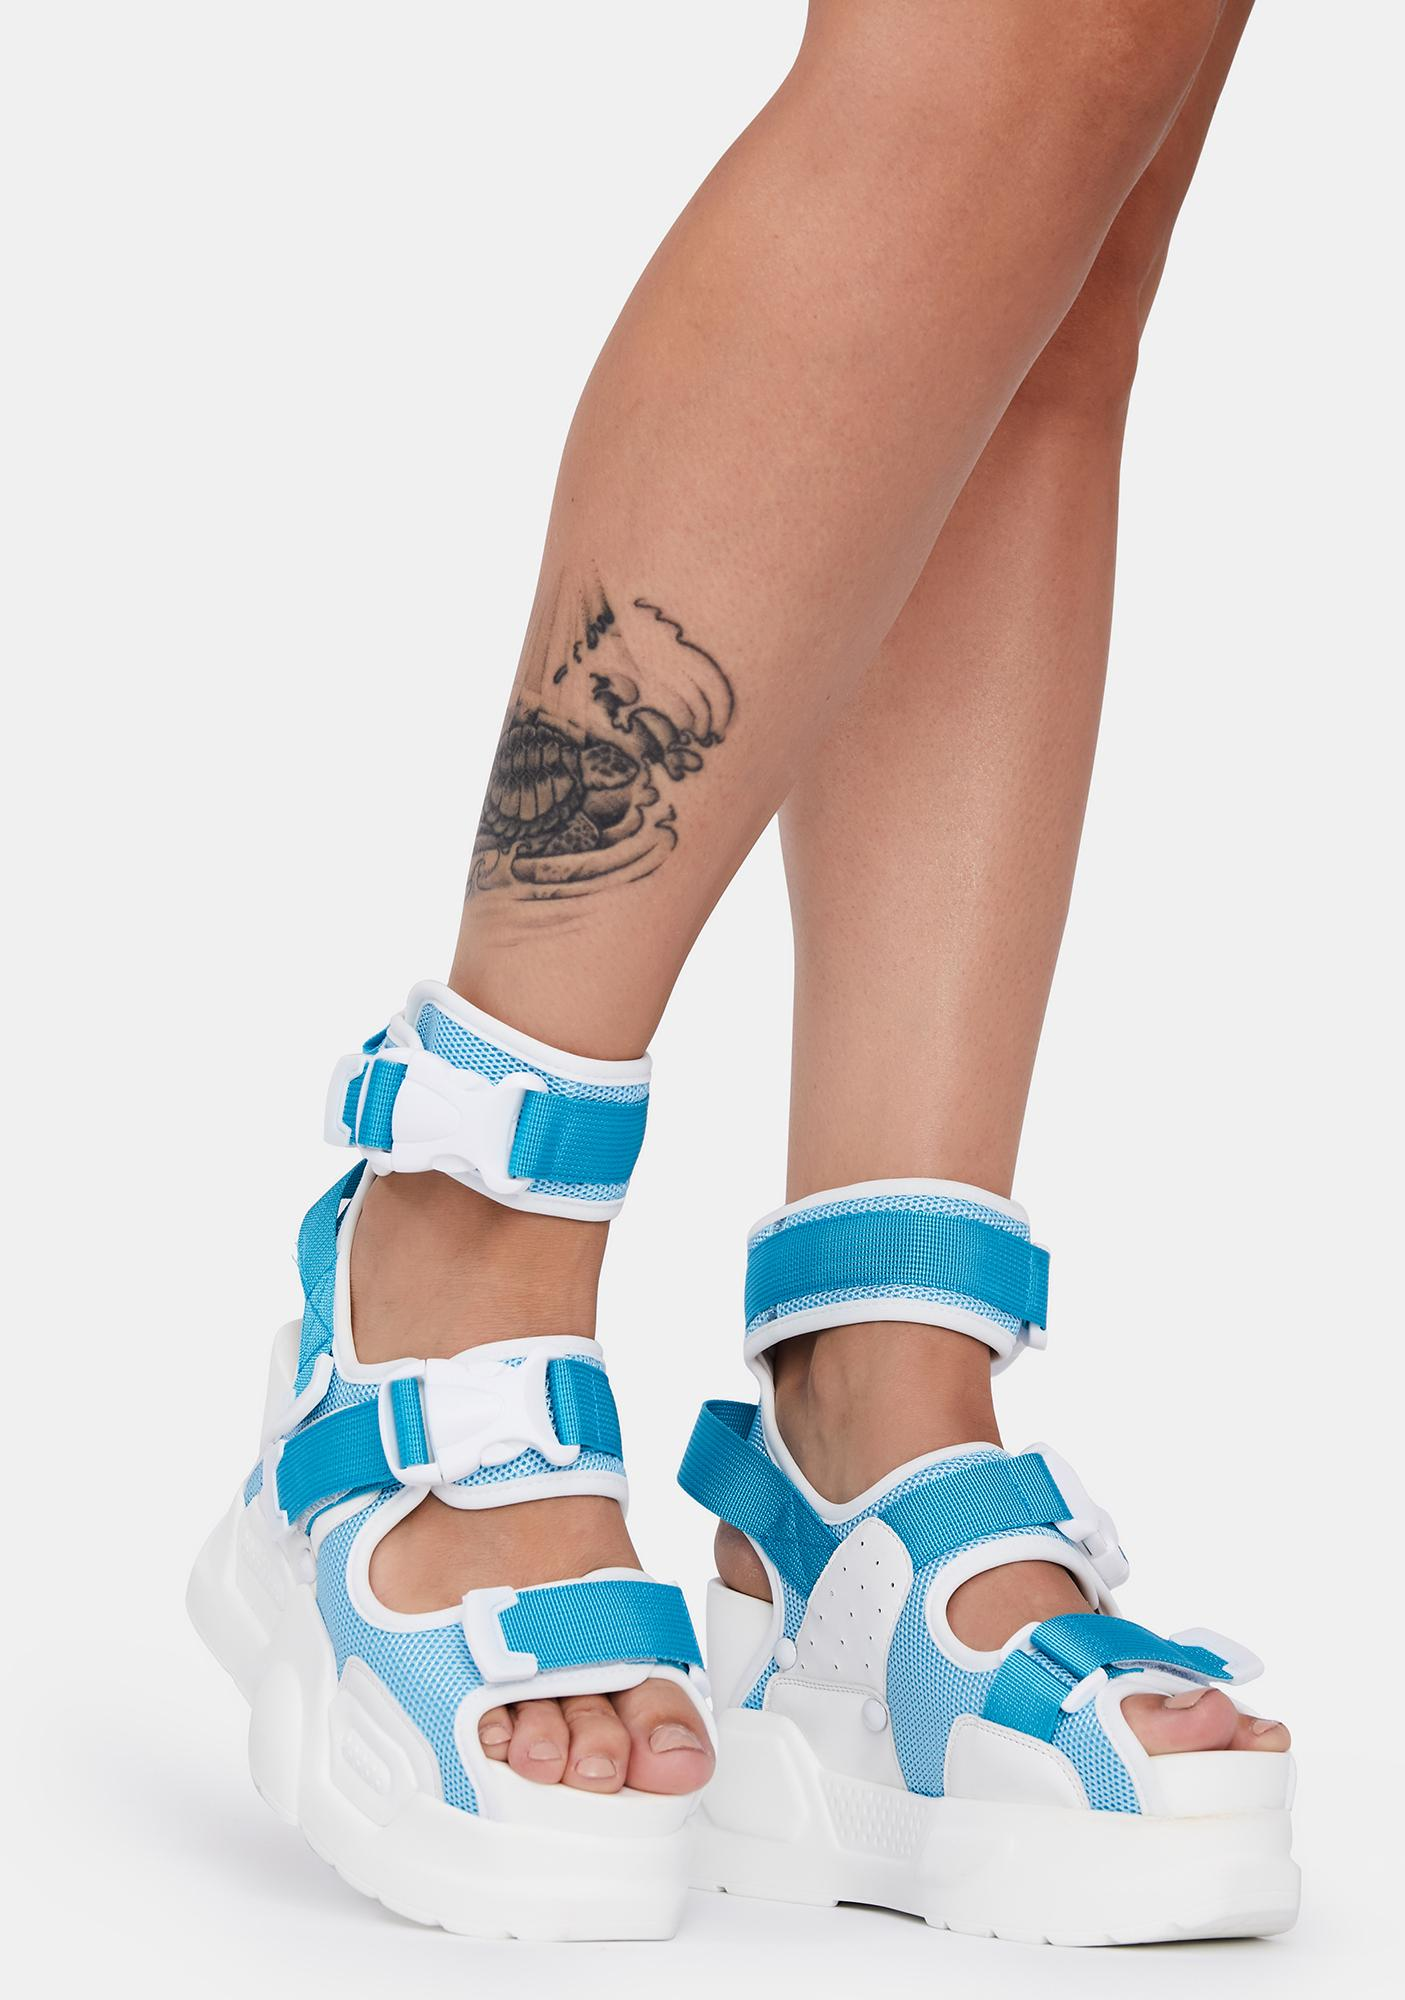 Anthony Wang Light Blue Mulberry Platform Sandals